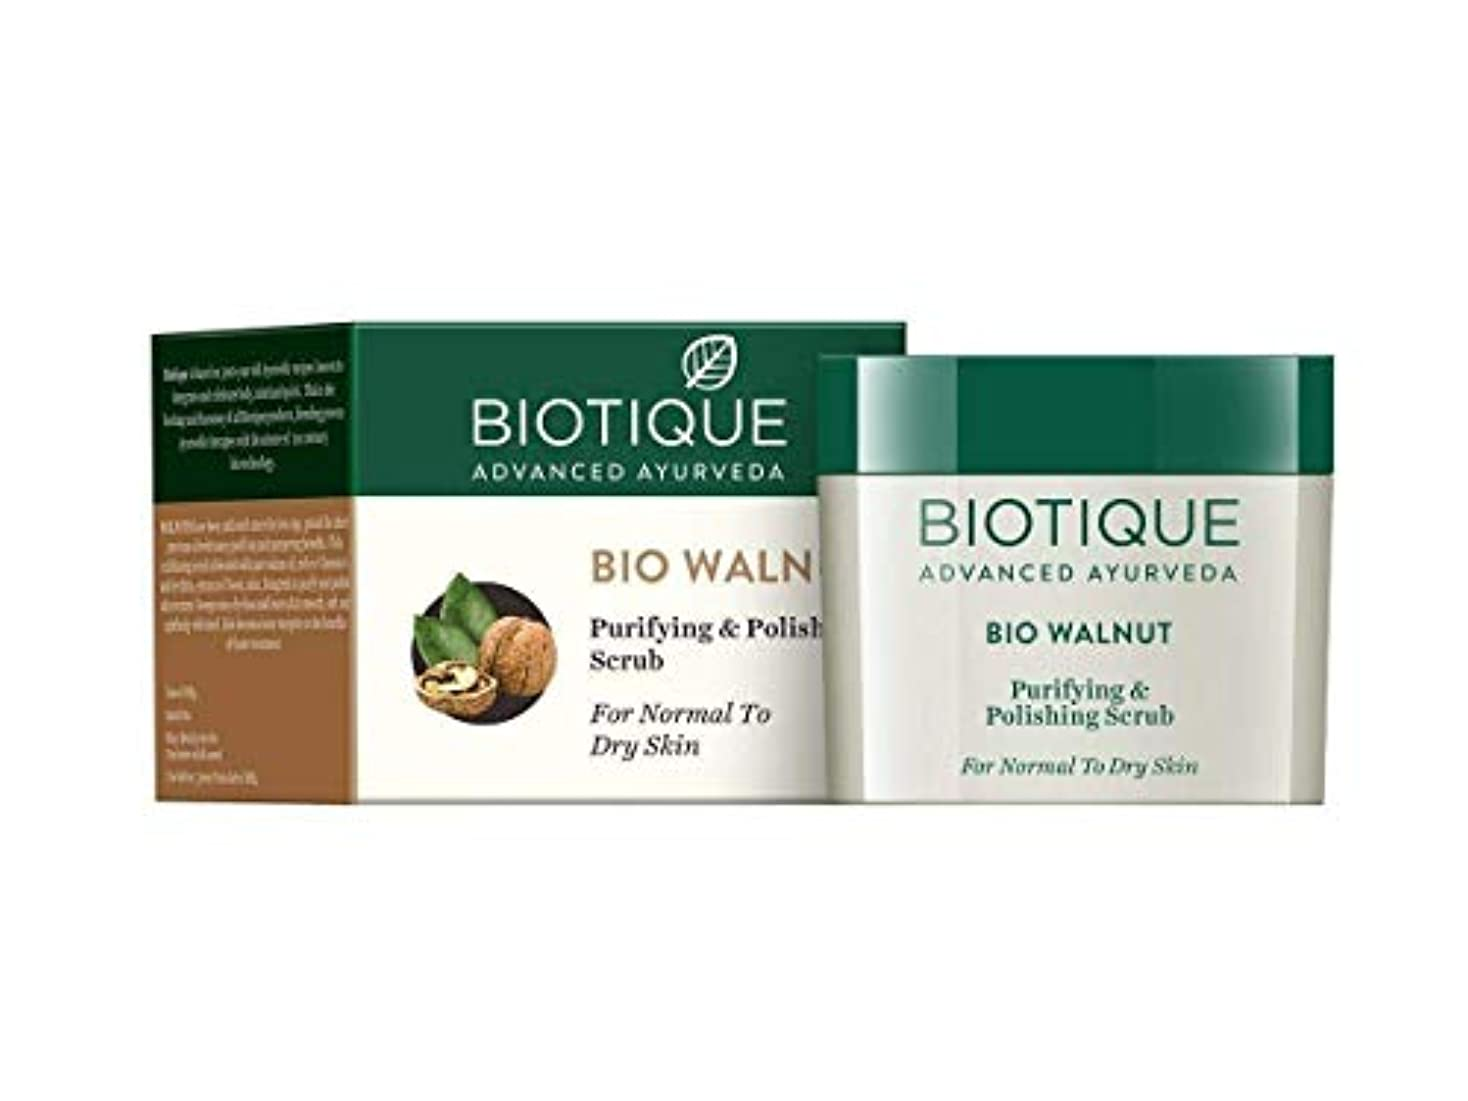 反発嘆願蒸留するBiotique Bio Walnut Purifying & Polishing Scrub, 50g get rid of the dead cells